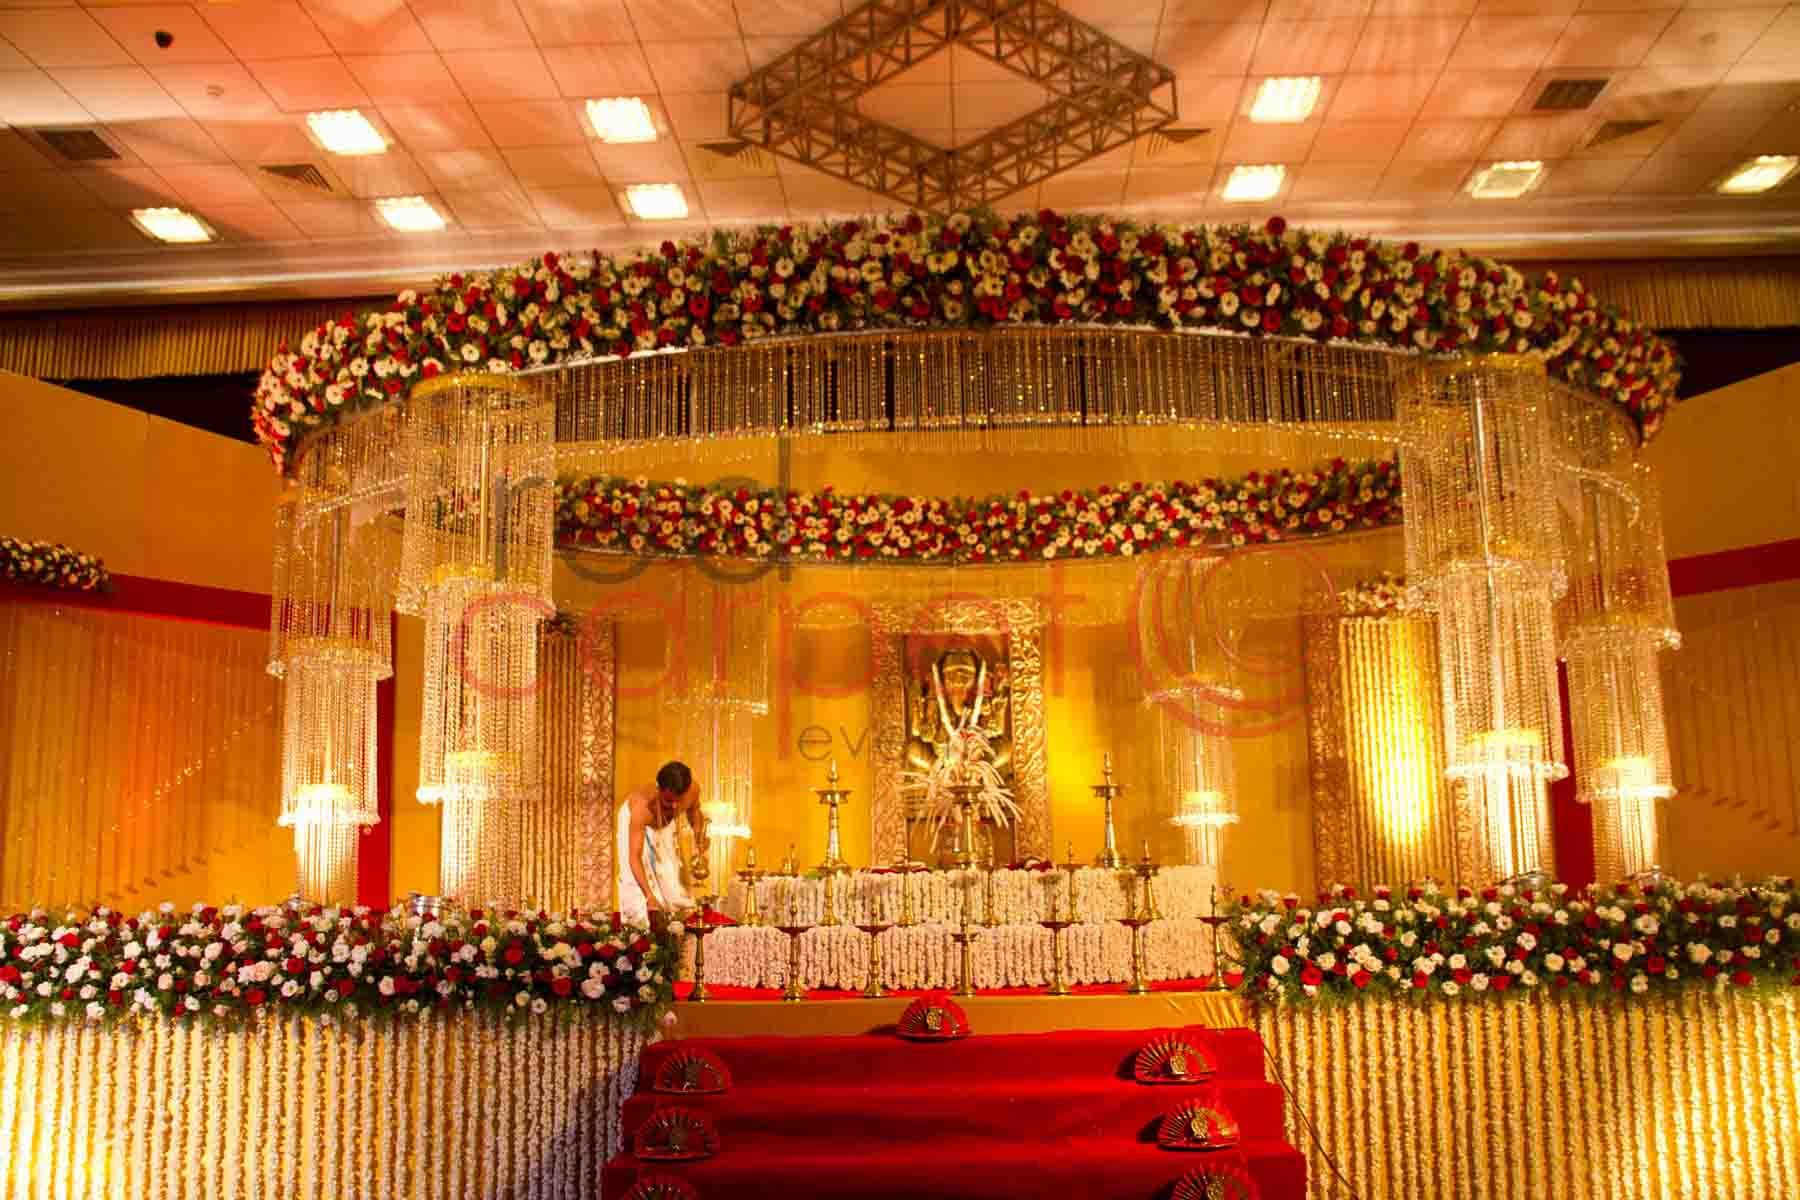 India wedding decor red carpet events wedding stages for Background decoration for indian wedding